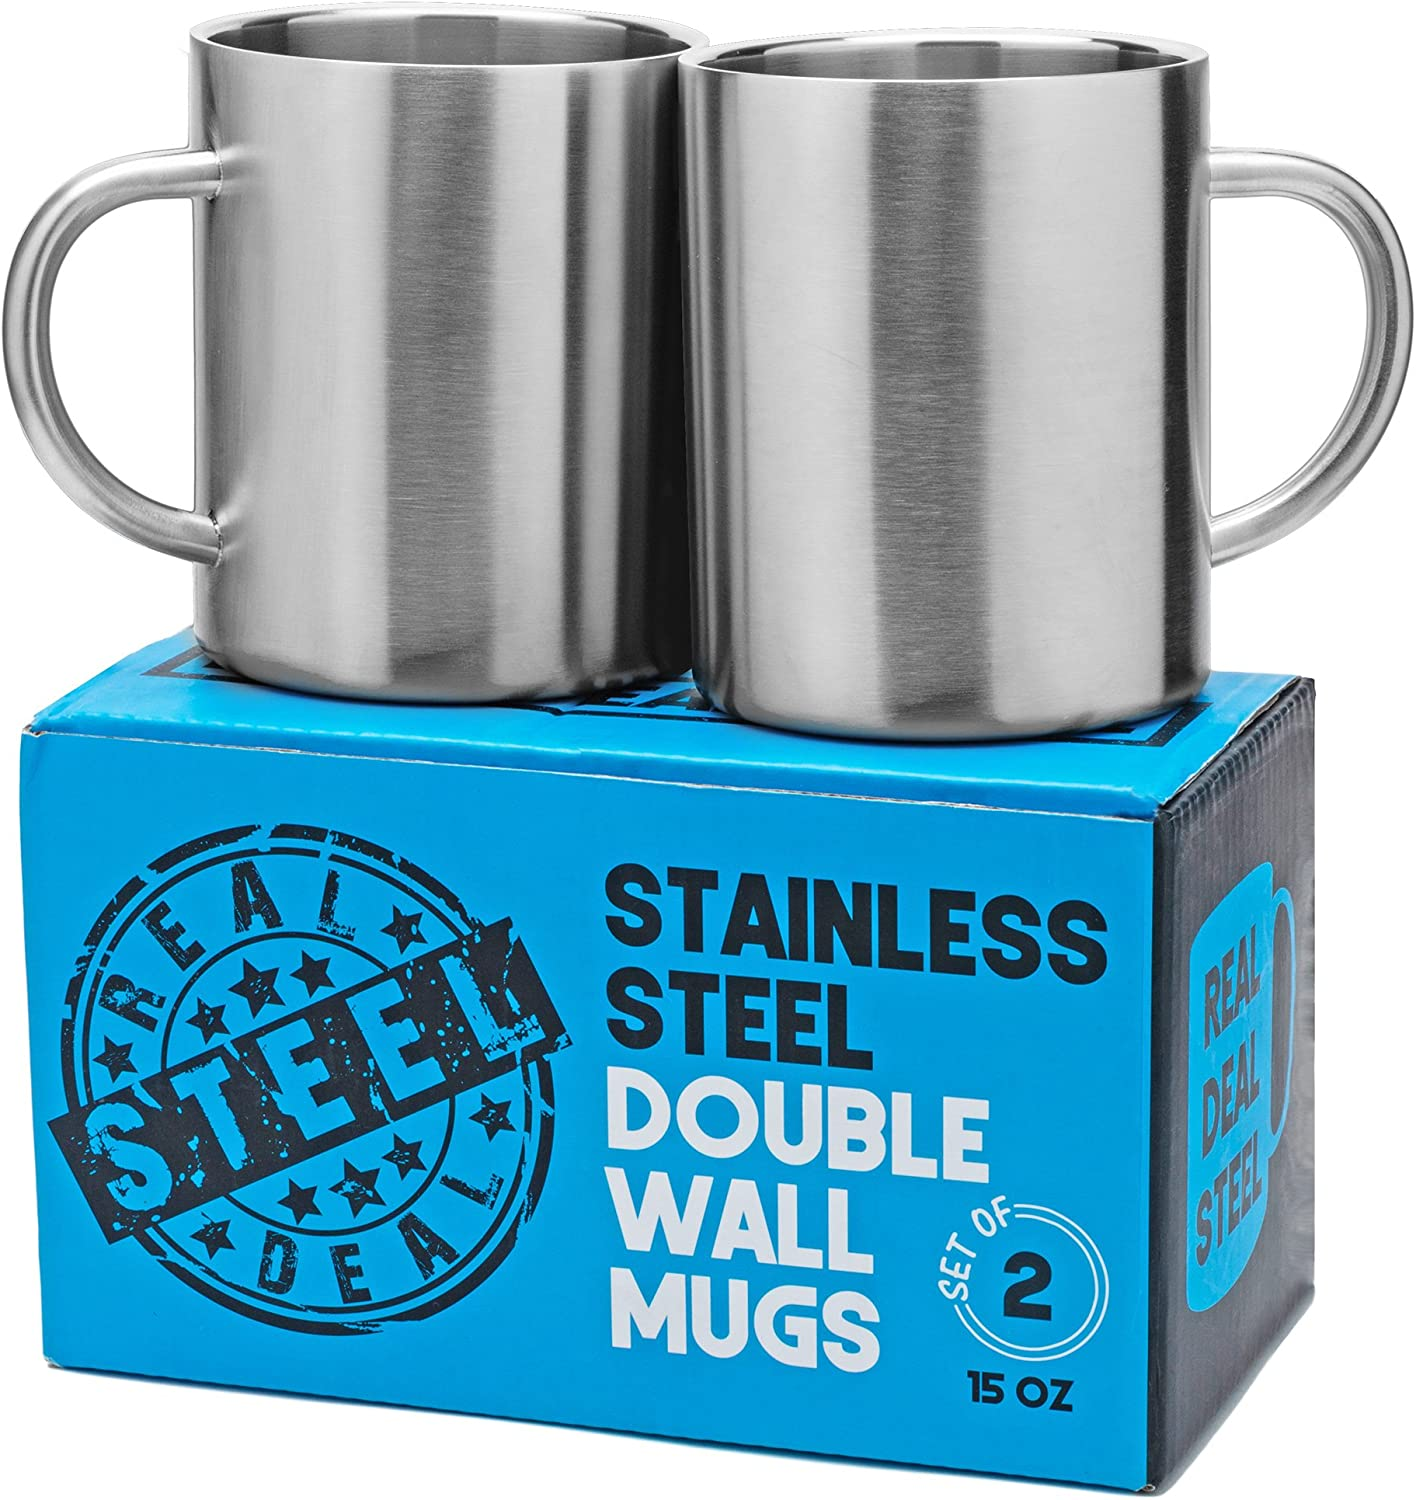 Drinking Cup Double Wall Stainless Steel For Travel Camping Tea Beer Coffee Mug